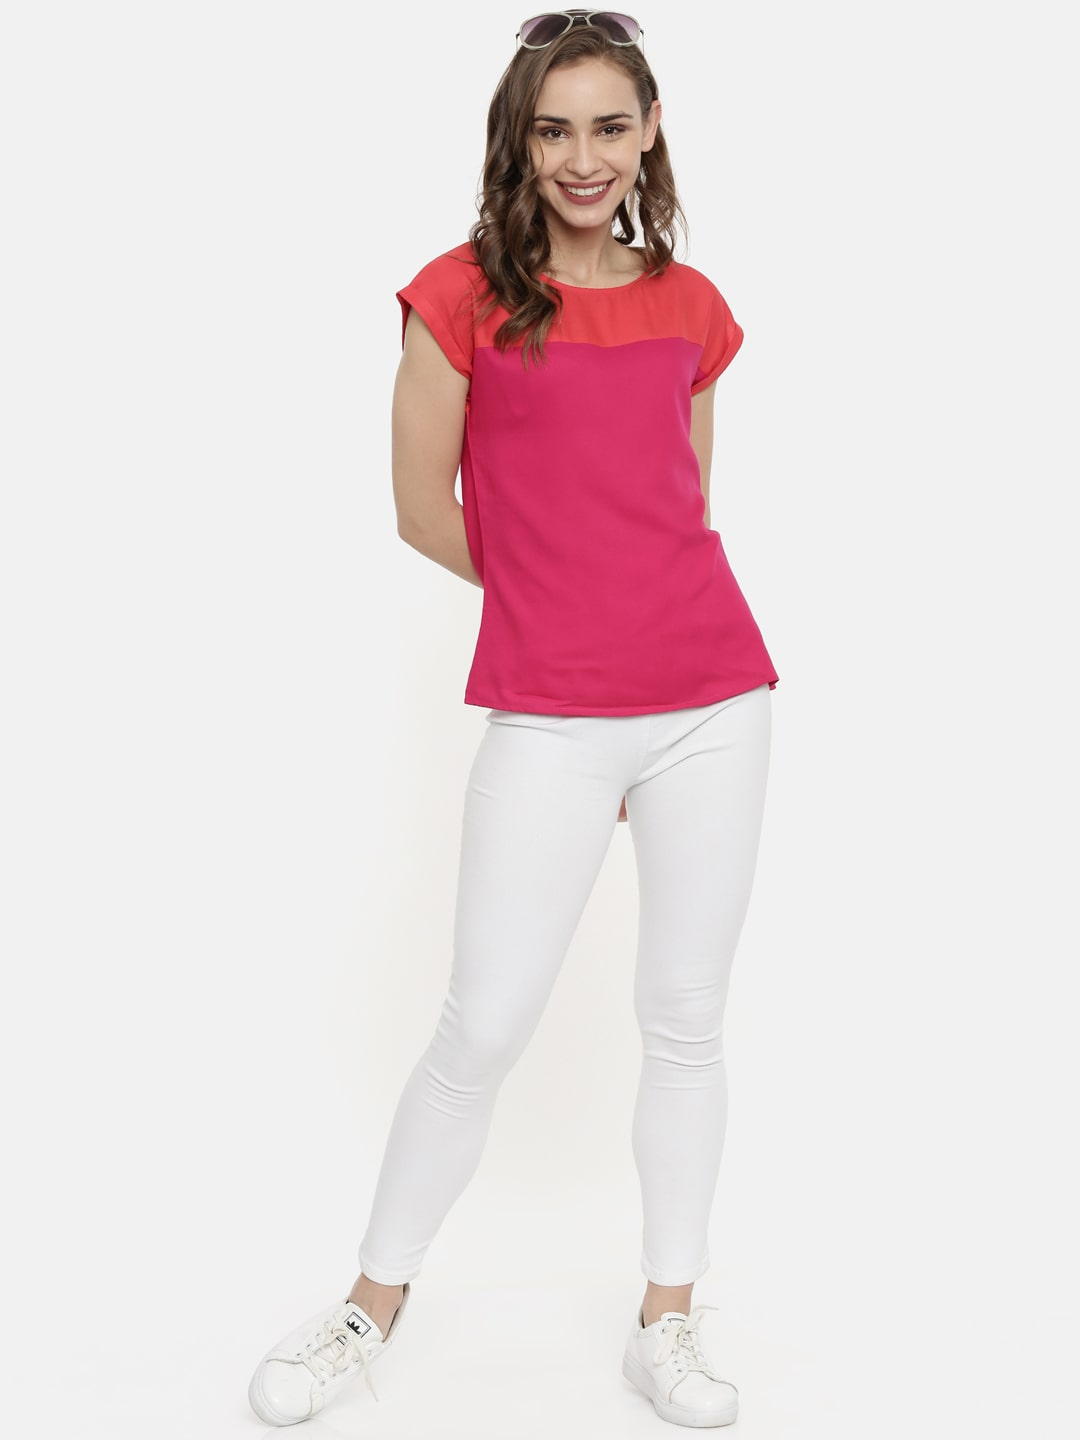 Pink & Coral Color Blocked Top